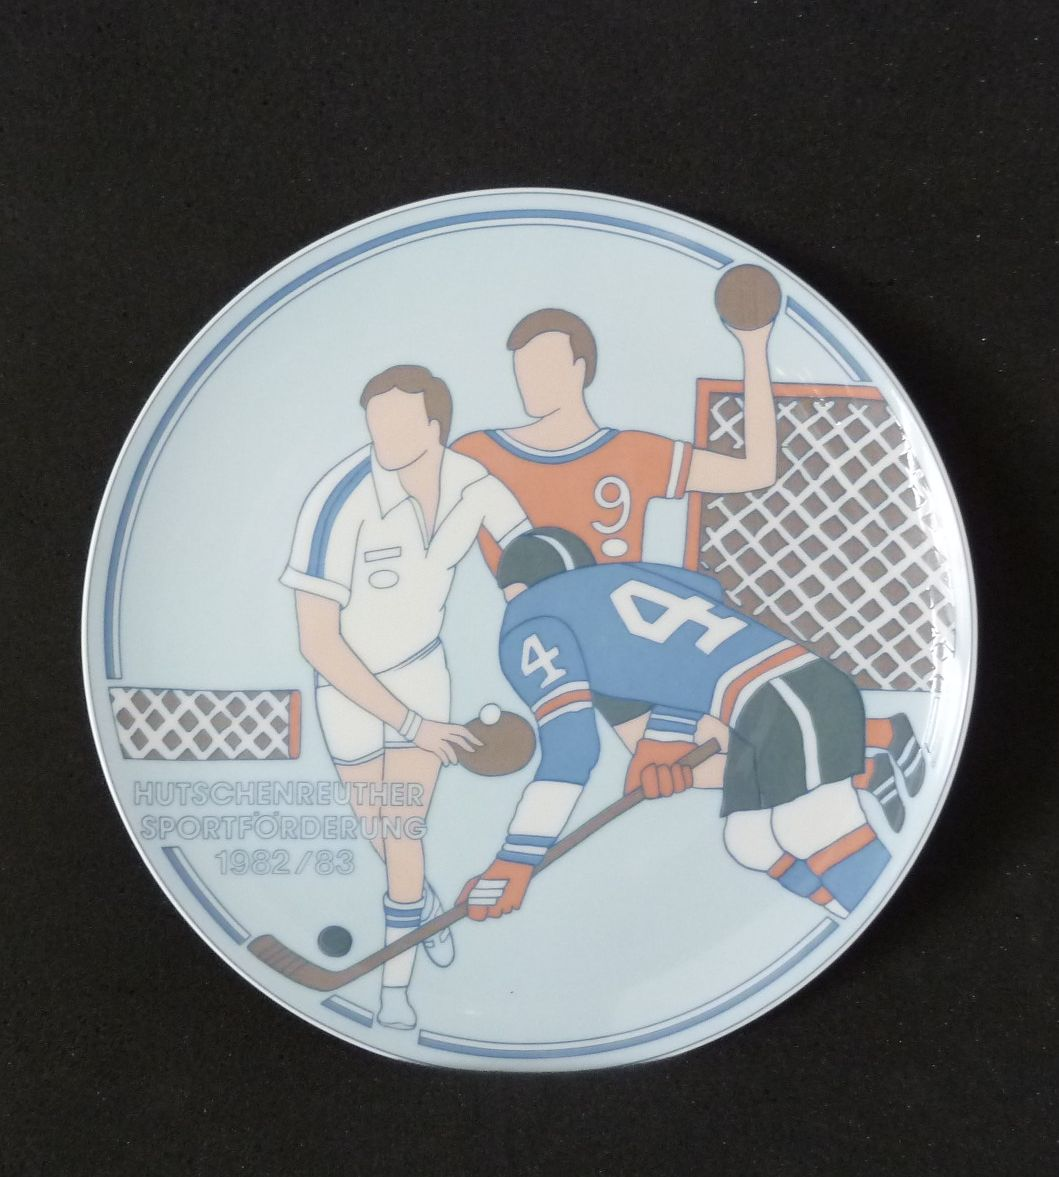 wall plate hutschenreuther sportf rderung sports promotion. Black Bedroom Furniture Sets. Home Design Ideas